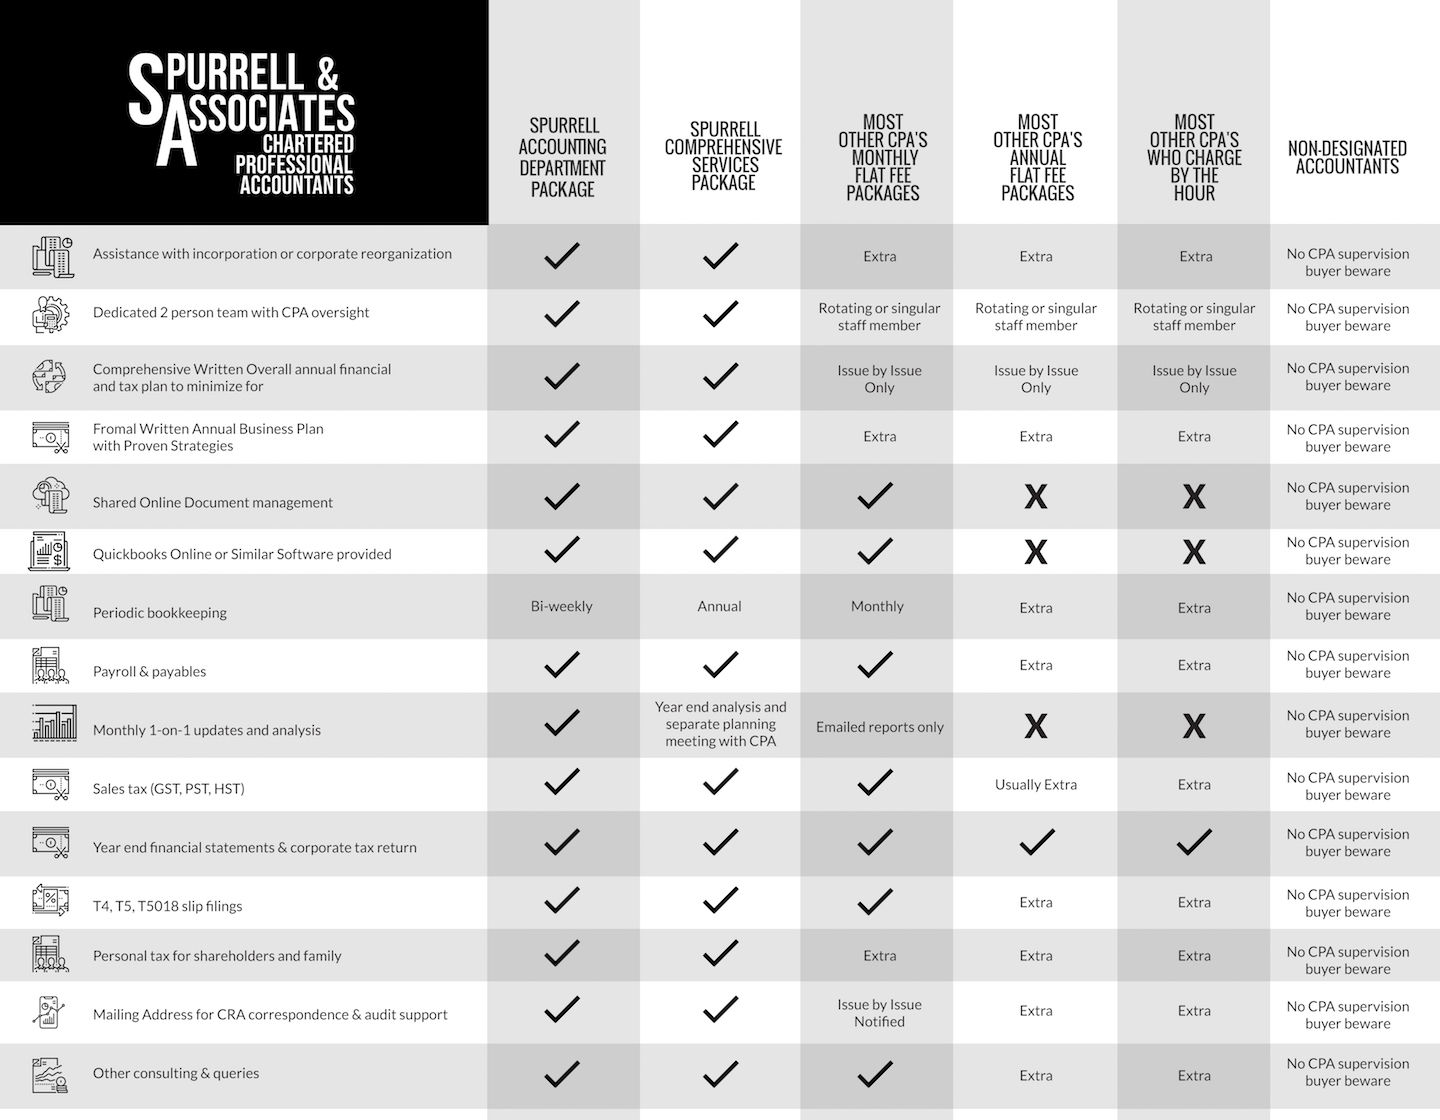 Edmondton CPA | How Spurrell & Associates Compares